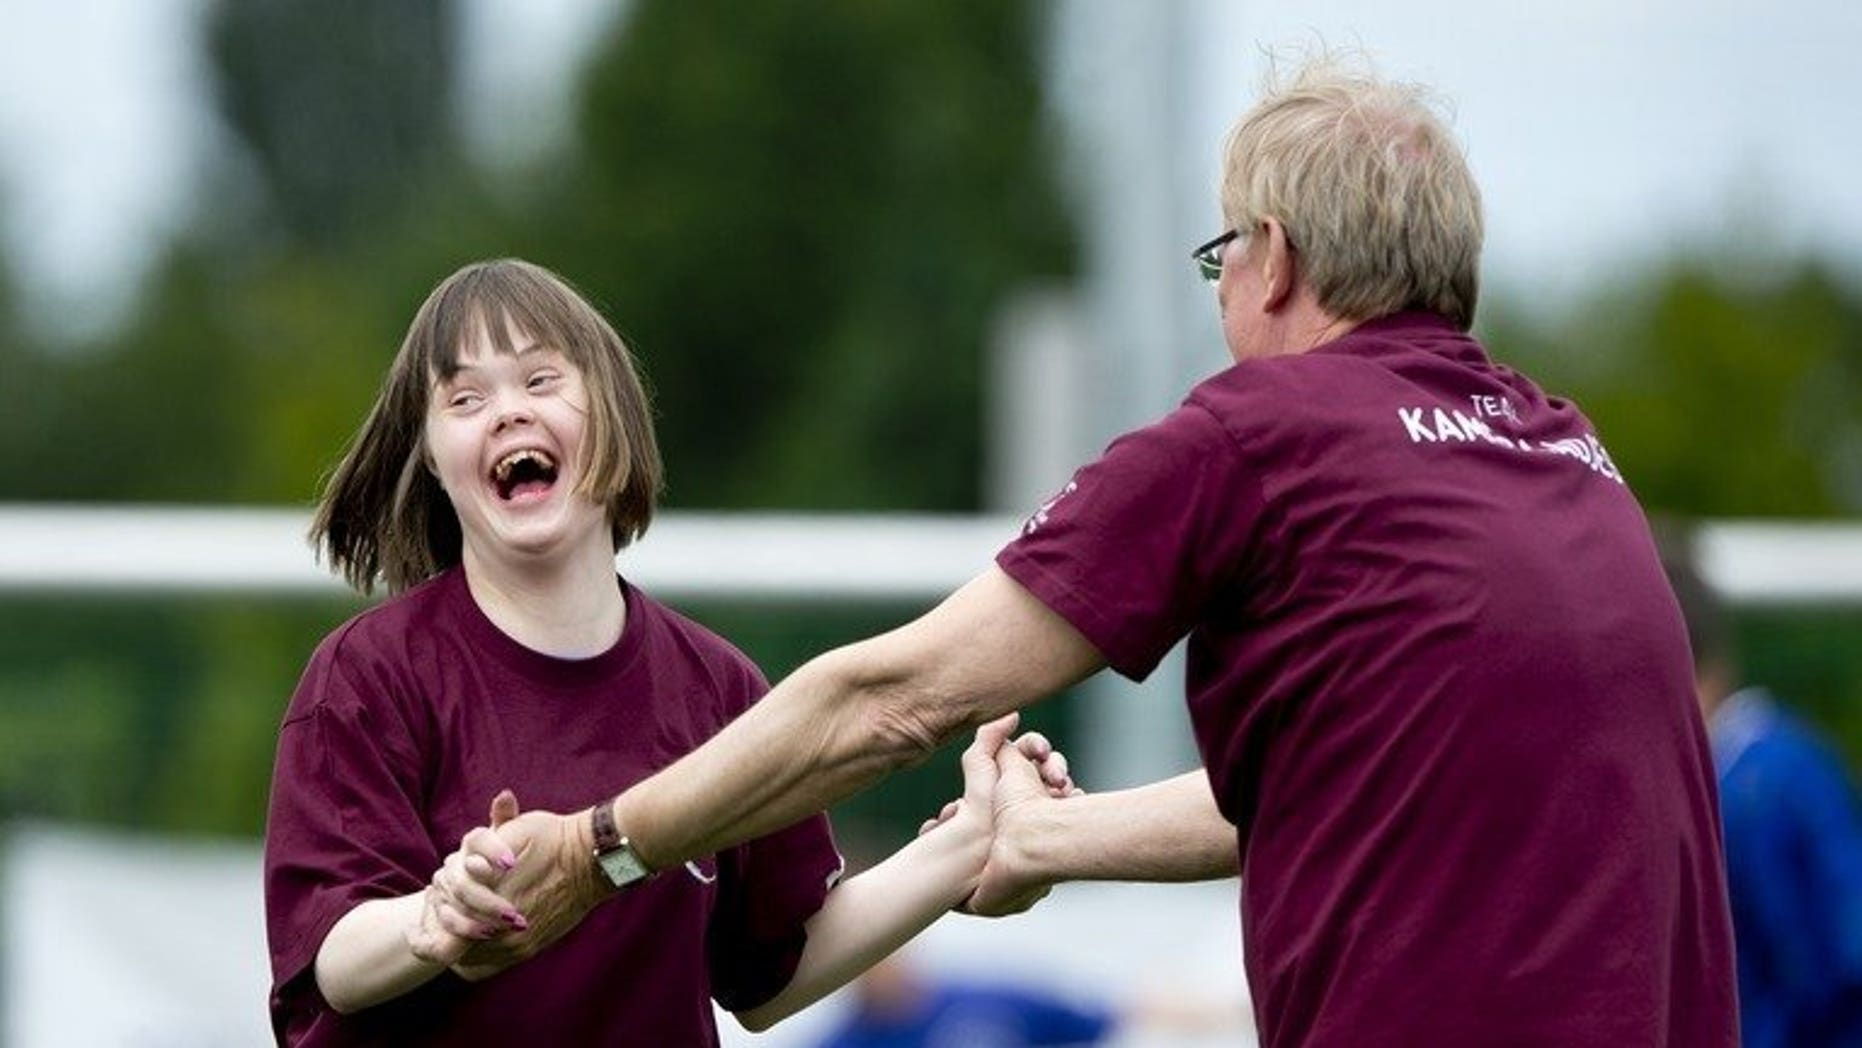 A child with Down's syndrome shares a laugh with Netherlands' TV presenter Jack Spijkerman as they take part in the 'Give Down the Future' football tournament in De Toekomst stadium in Amsterdam on June 29, 2013. A Japanese pharmaceutical company said Monday it will begin therapeutic testing of a drug it hopes will slow the decline in quality of life for some people with Down's syndrome.